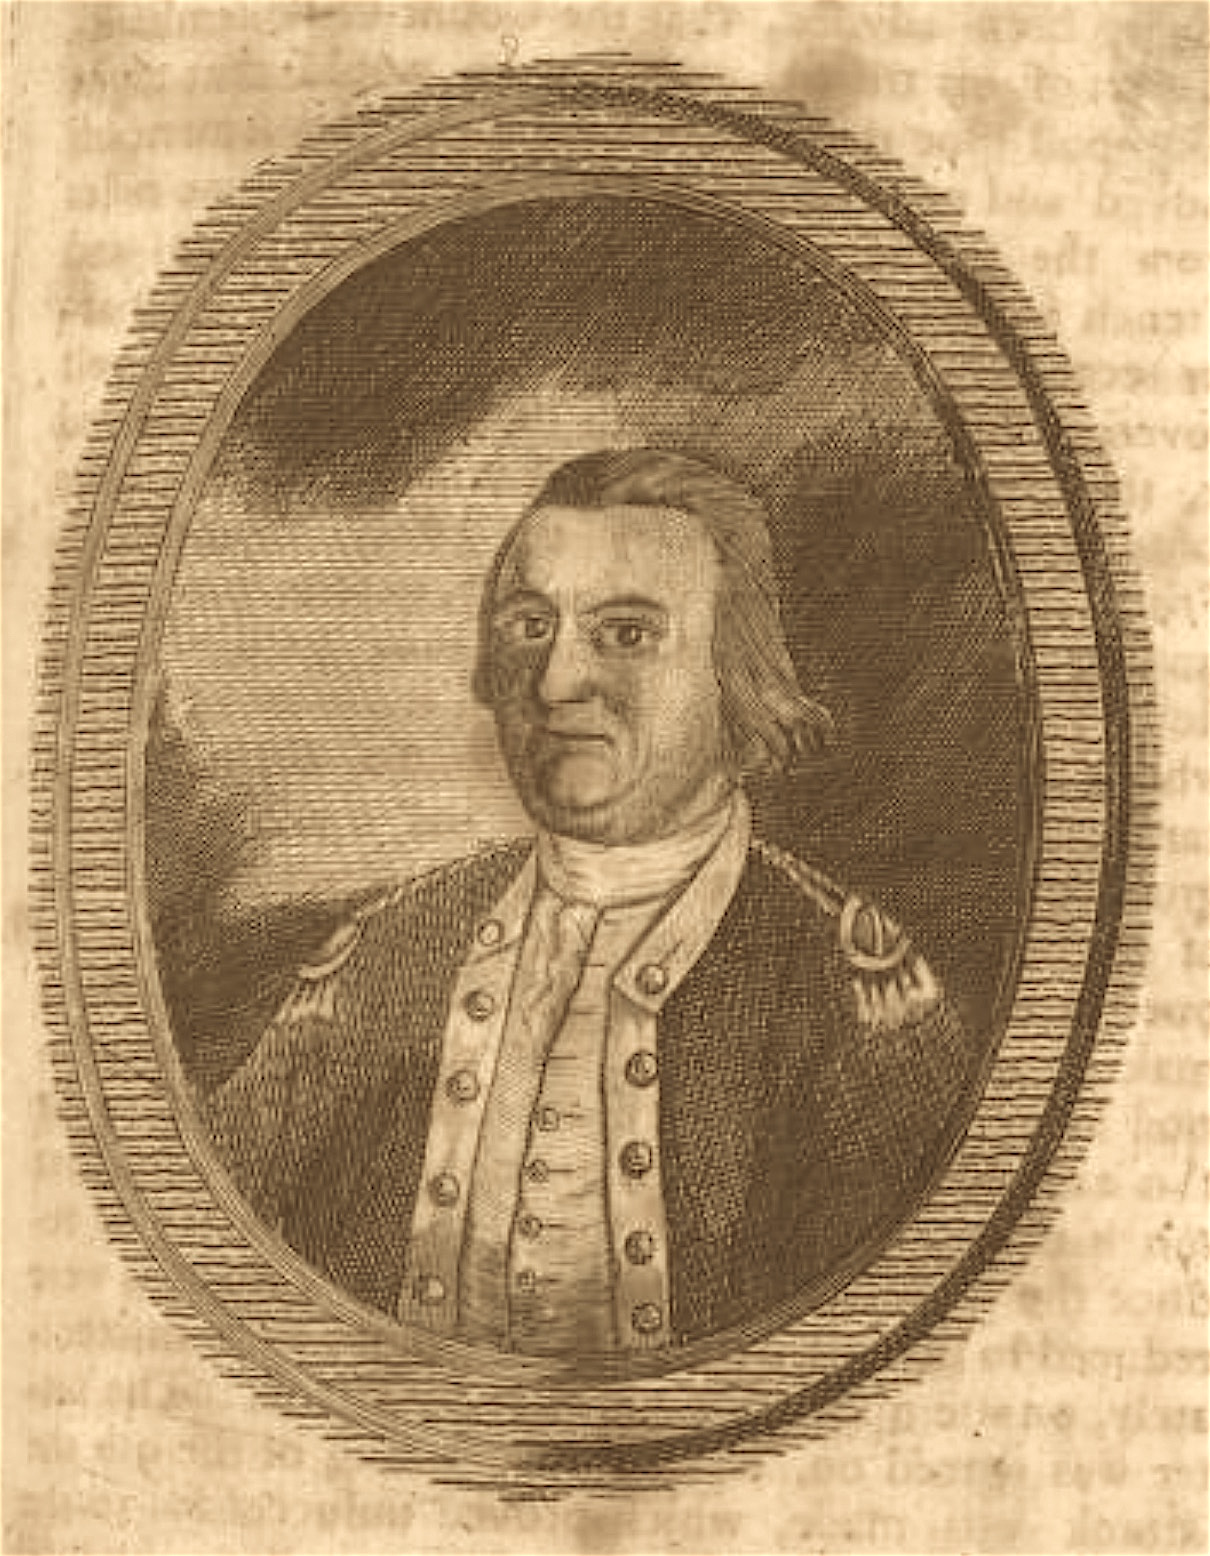 Benjamin Lincoln went home to Hingham a few months after this engraved portrait was published in 1782